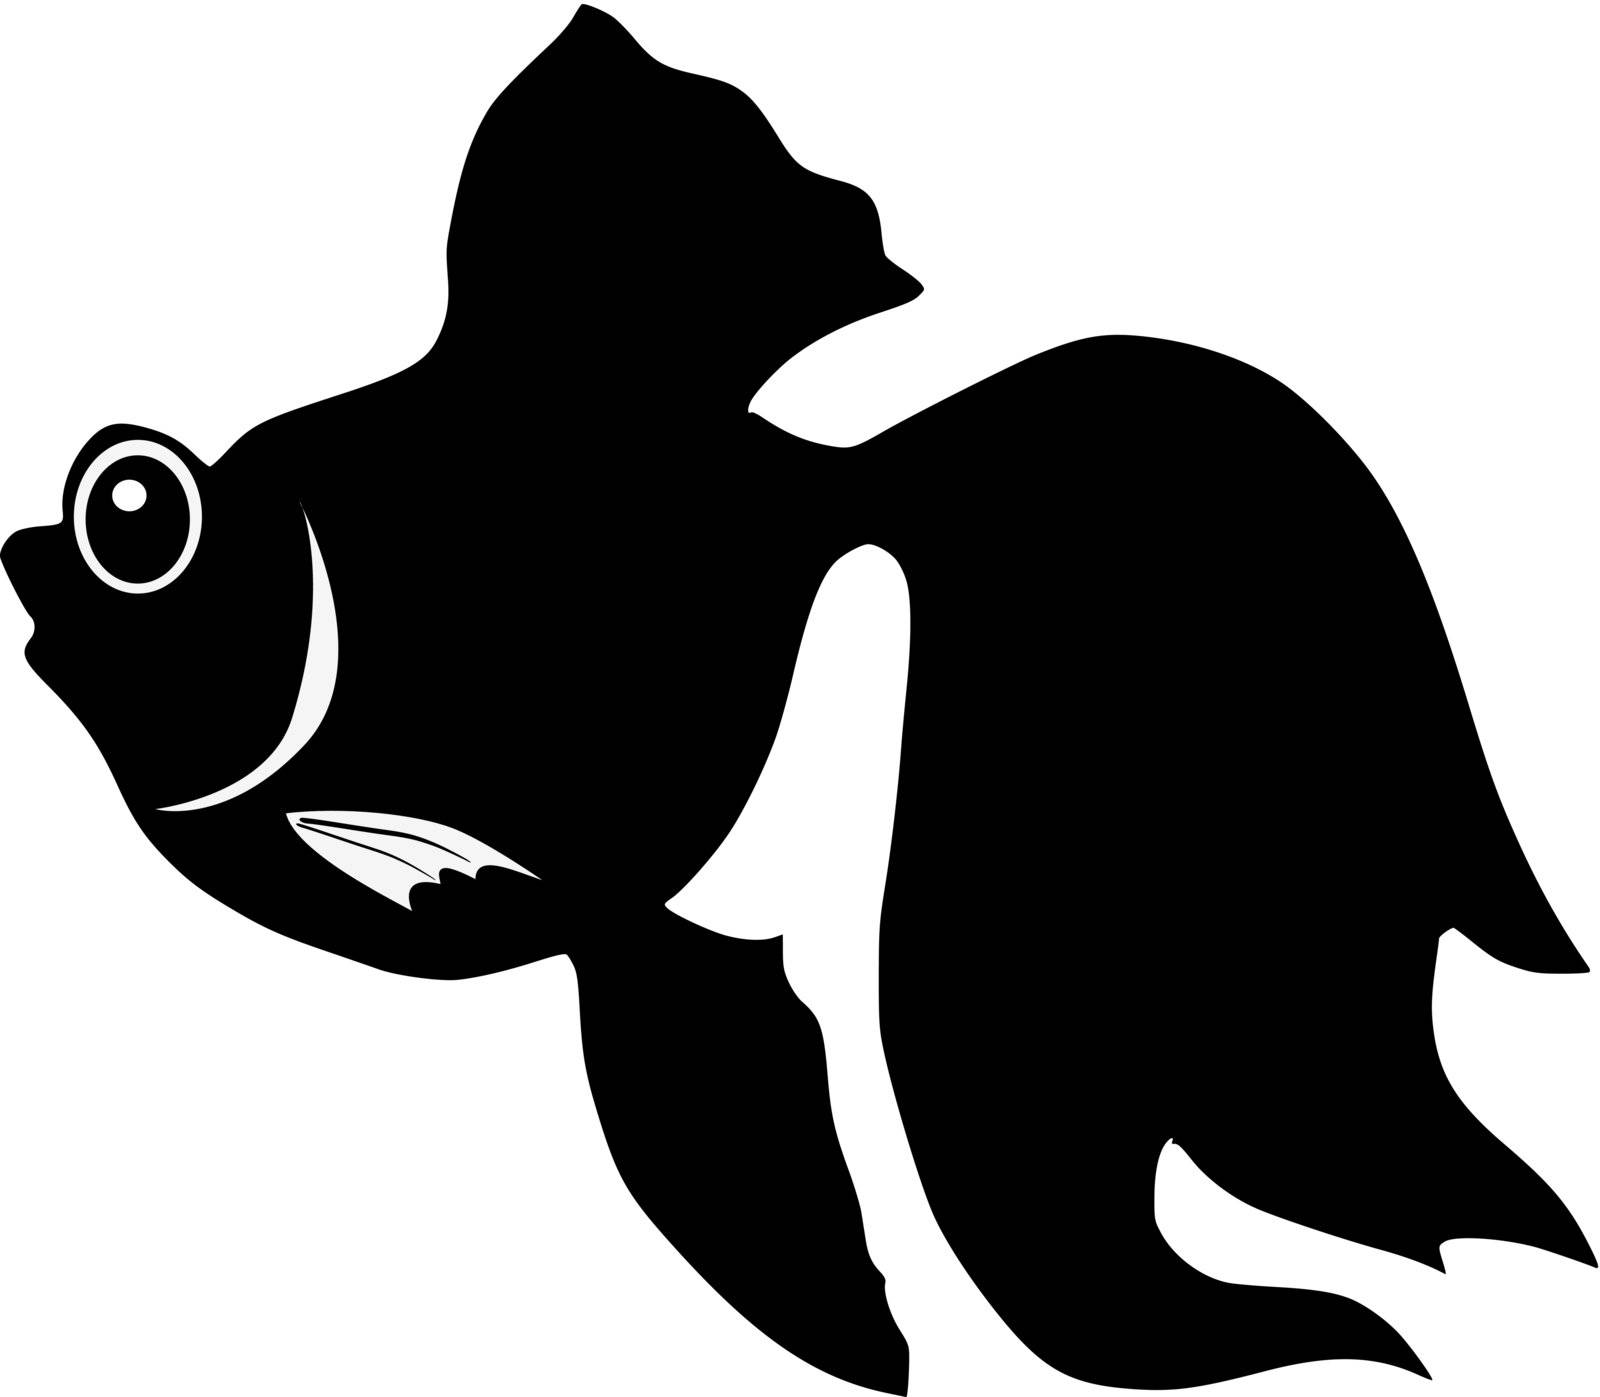 Silhouette of goldfish by Perysty